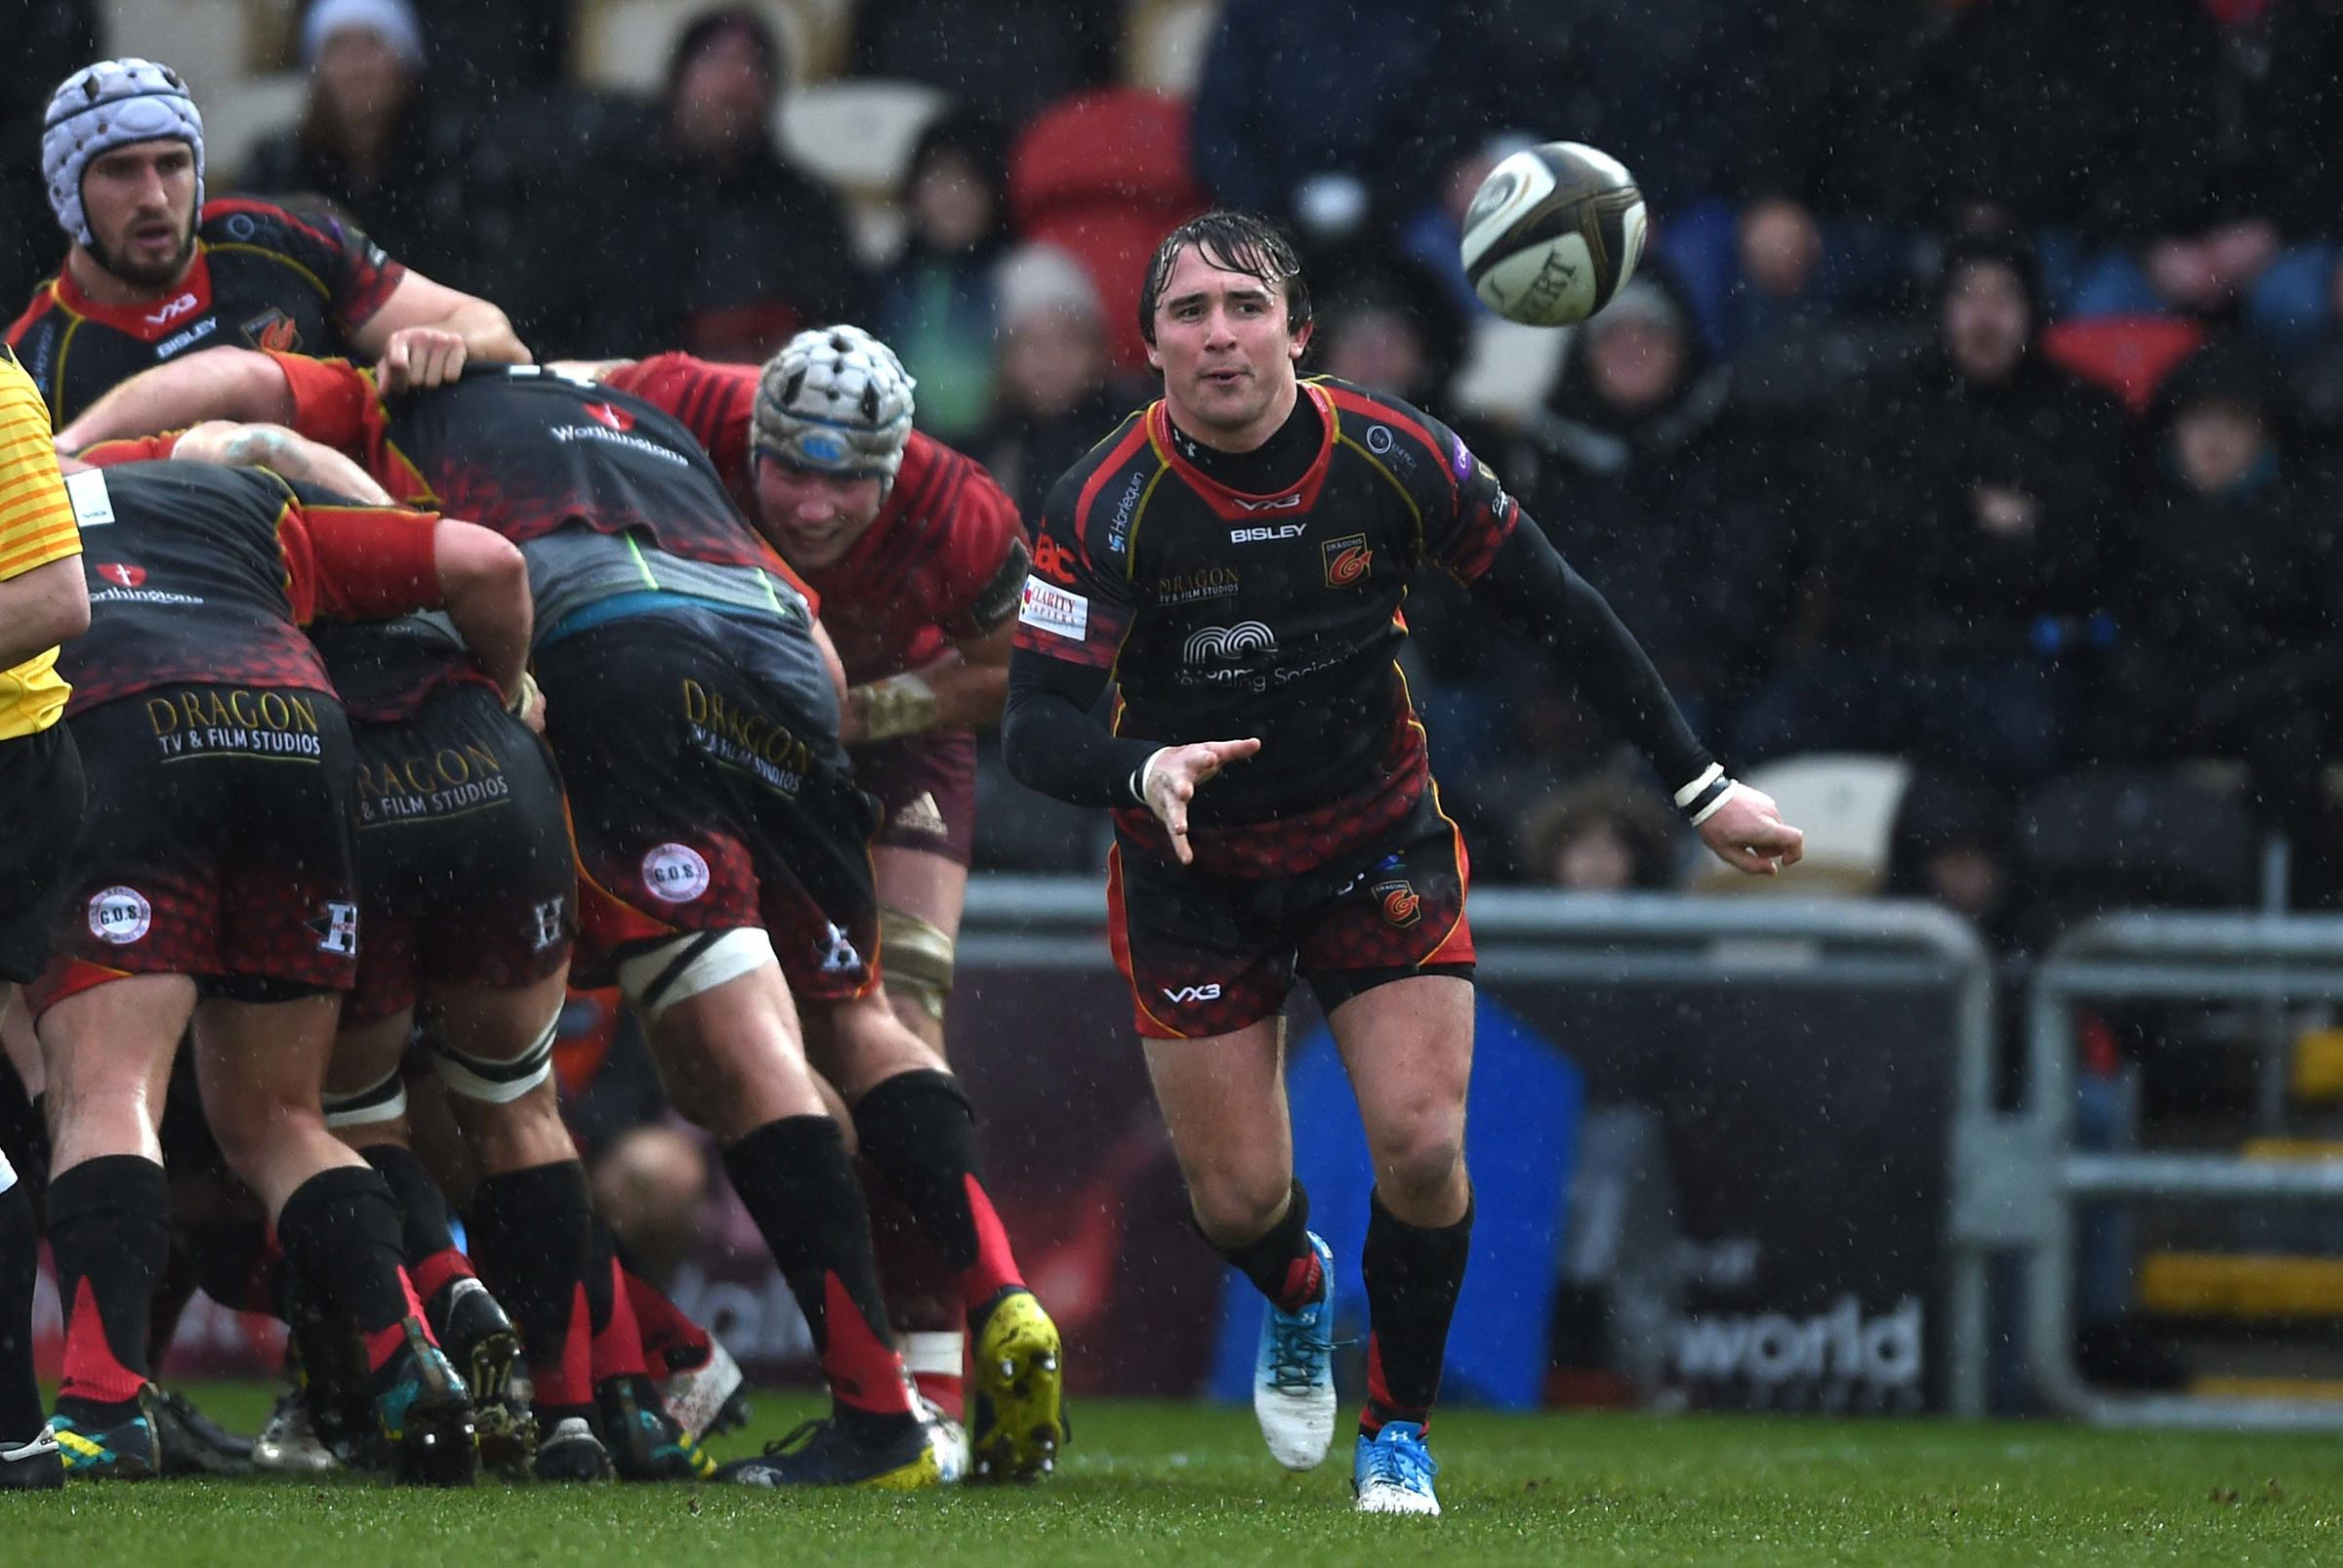 OPTIMISTIC: Scrum-half Rhodri Williams thinks the Dragons are on the right track